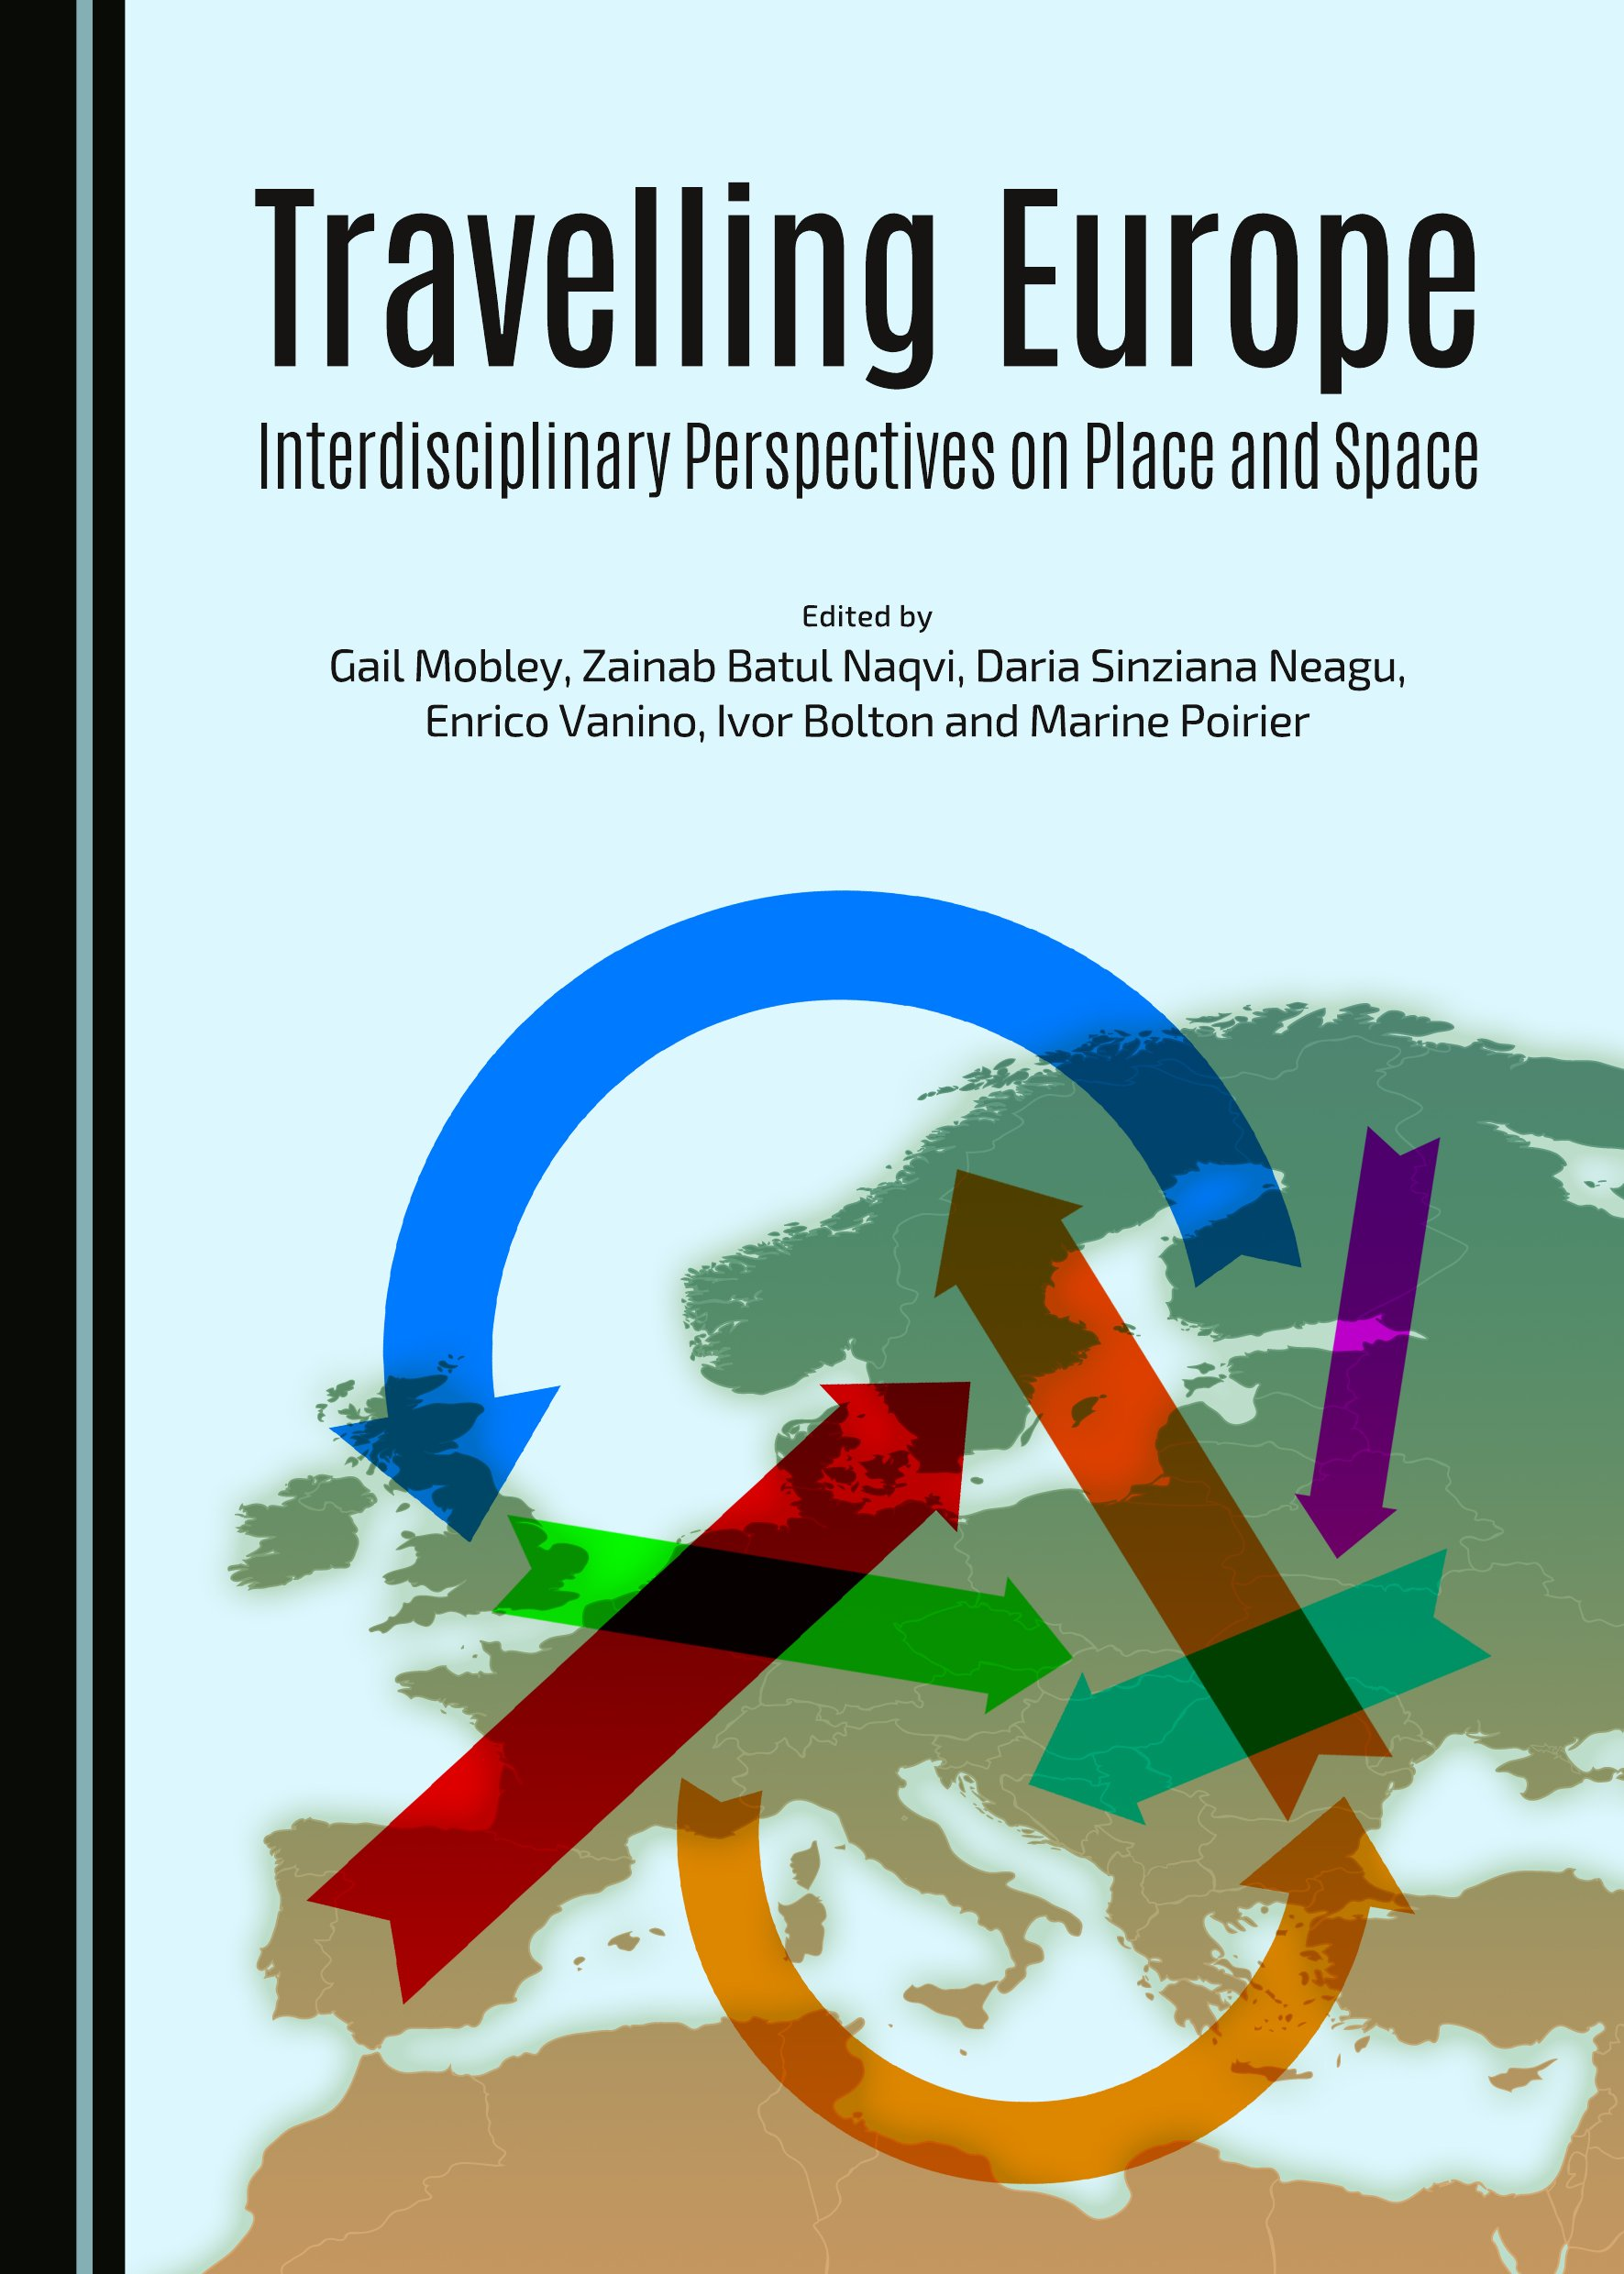 Travelling Europe: Interdisciplinary Perspectives on Place and Space